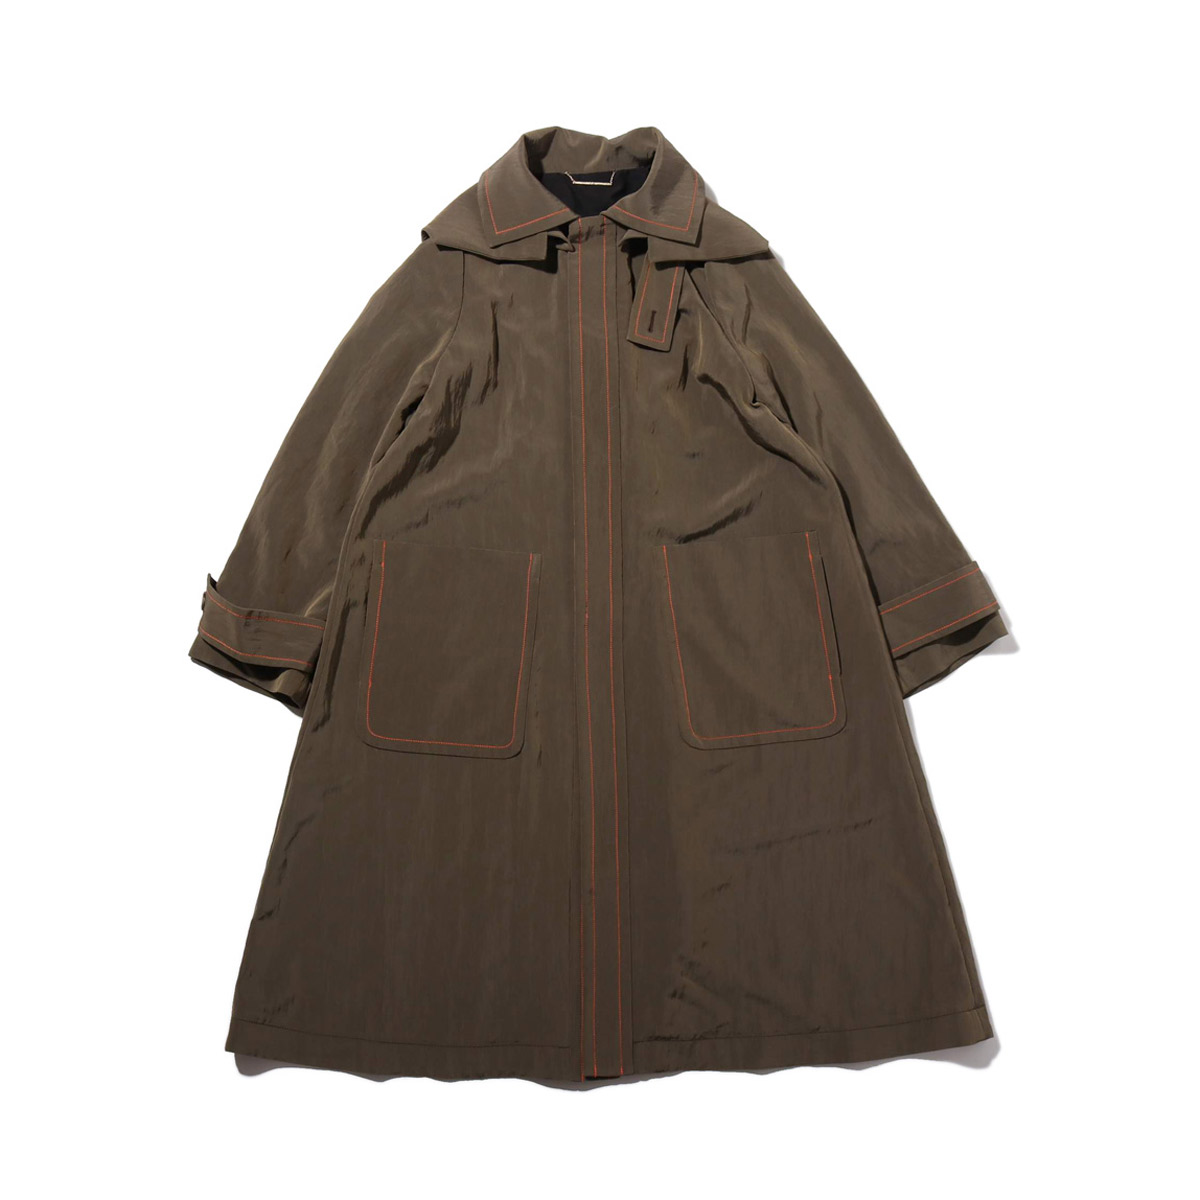 atmos pink 配色ステッチ ロングコート(アトモスピンク ハイショクステッチ ロングコート)KHAKI【レディース コート】18FW-I